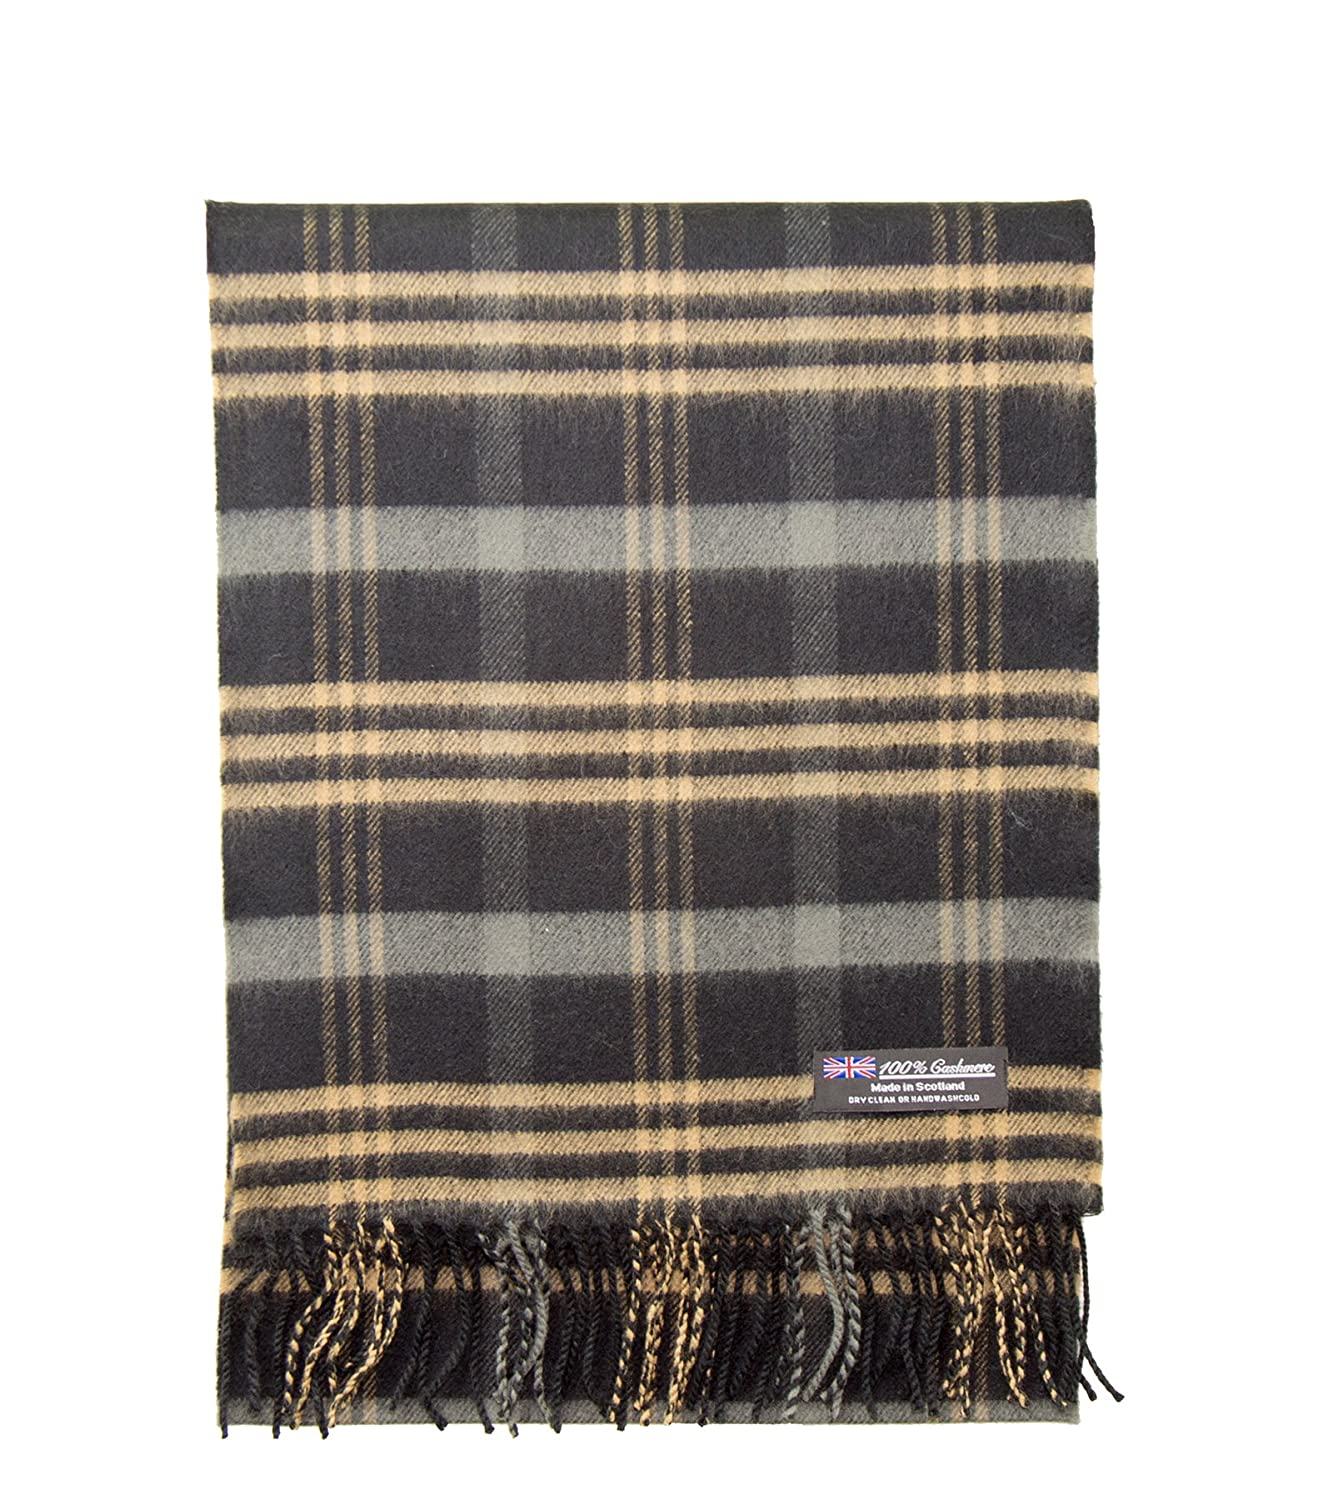 e1050af68 2 PLY 100% Cashmere Winter Scarf Elegant Collection Made in Scotland Warm  Soft Wool Solid Plaid (Black Camel 313) at Amazon Men's Clothing store: